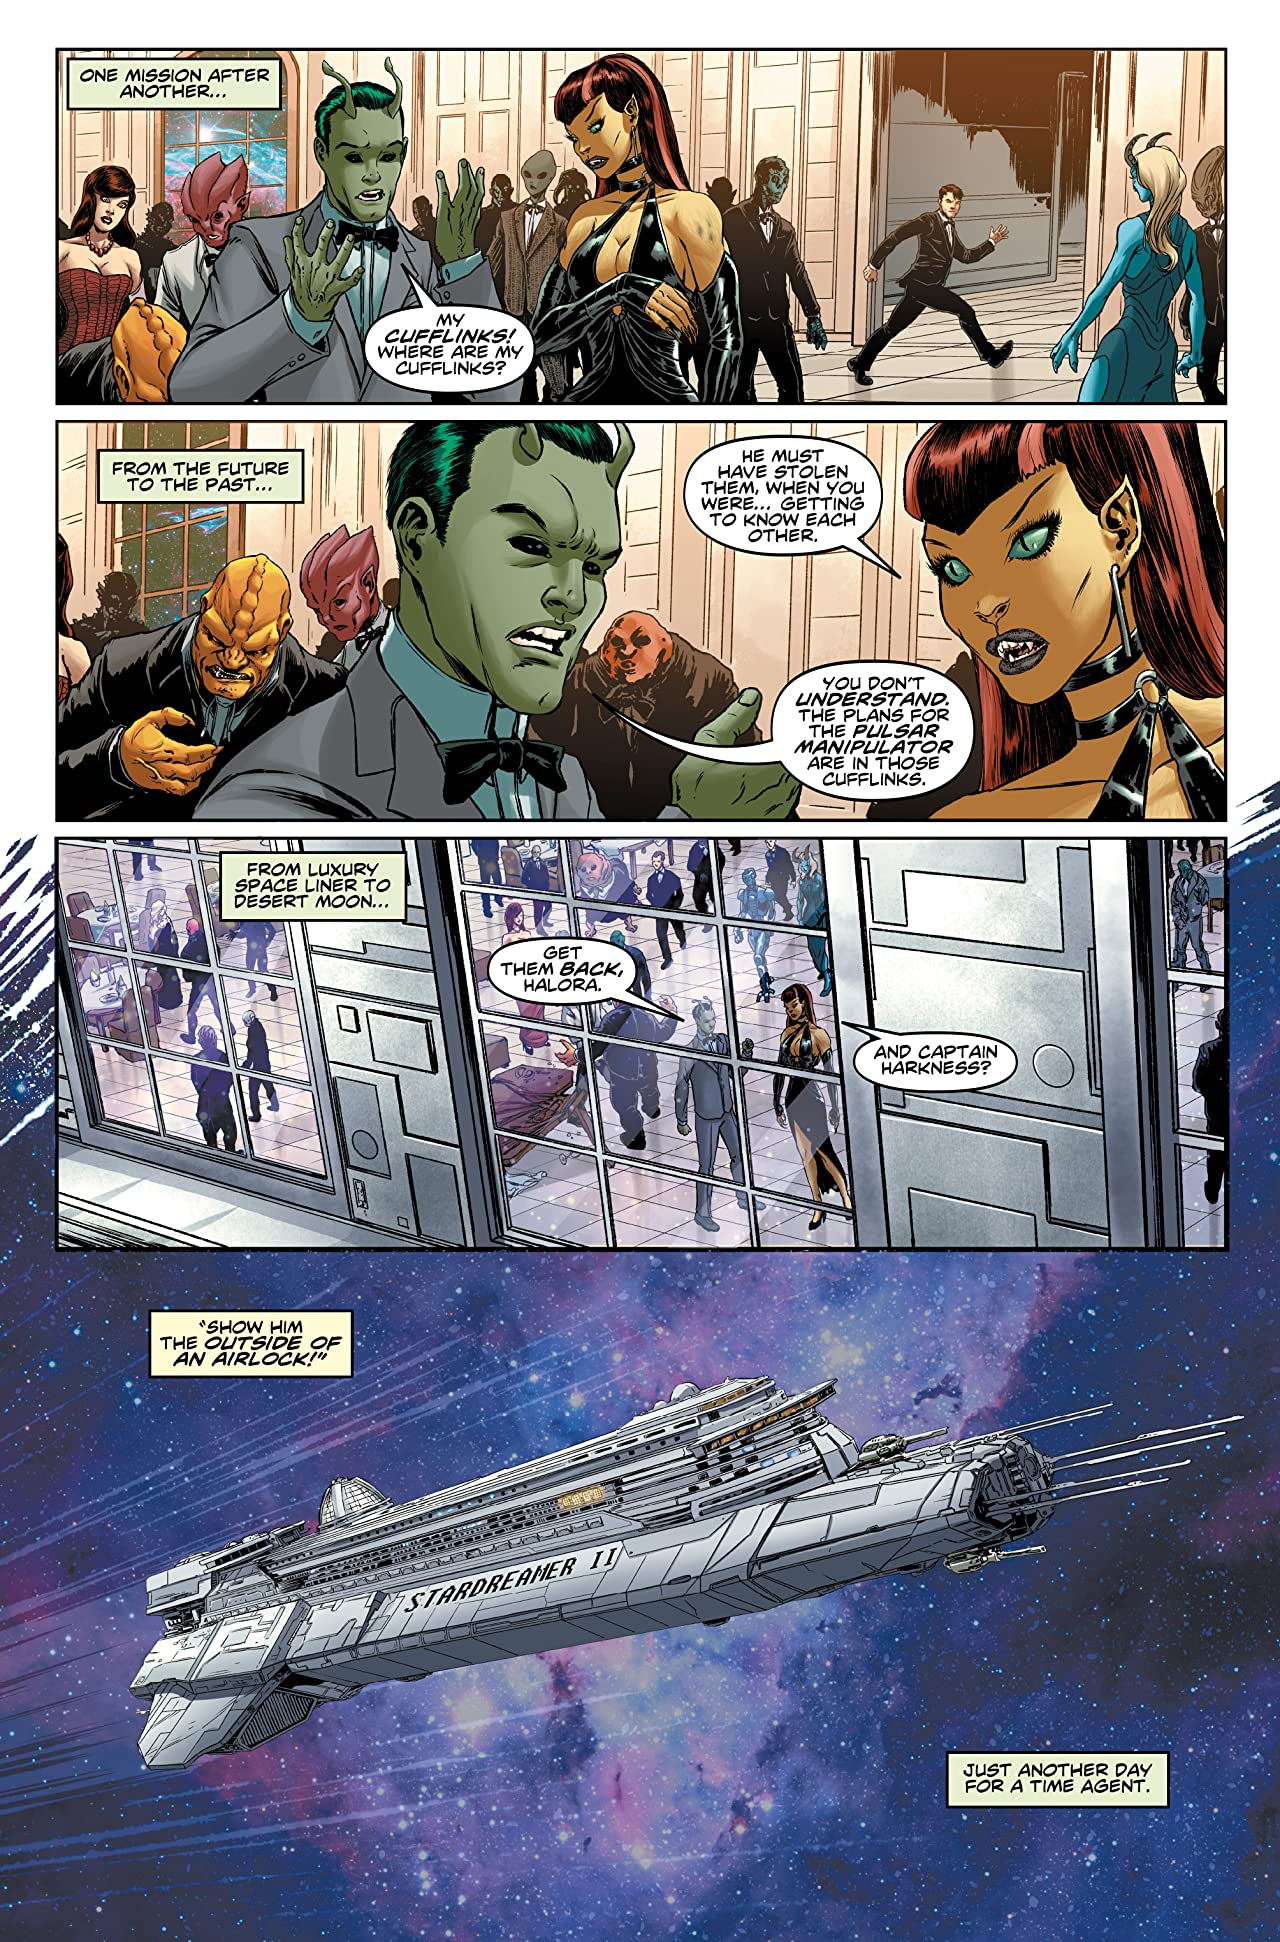 Doctor Who: The Ninth Doctor #2.13